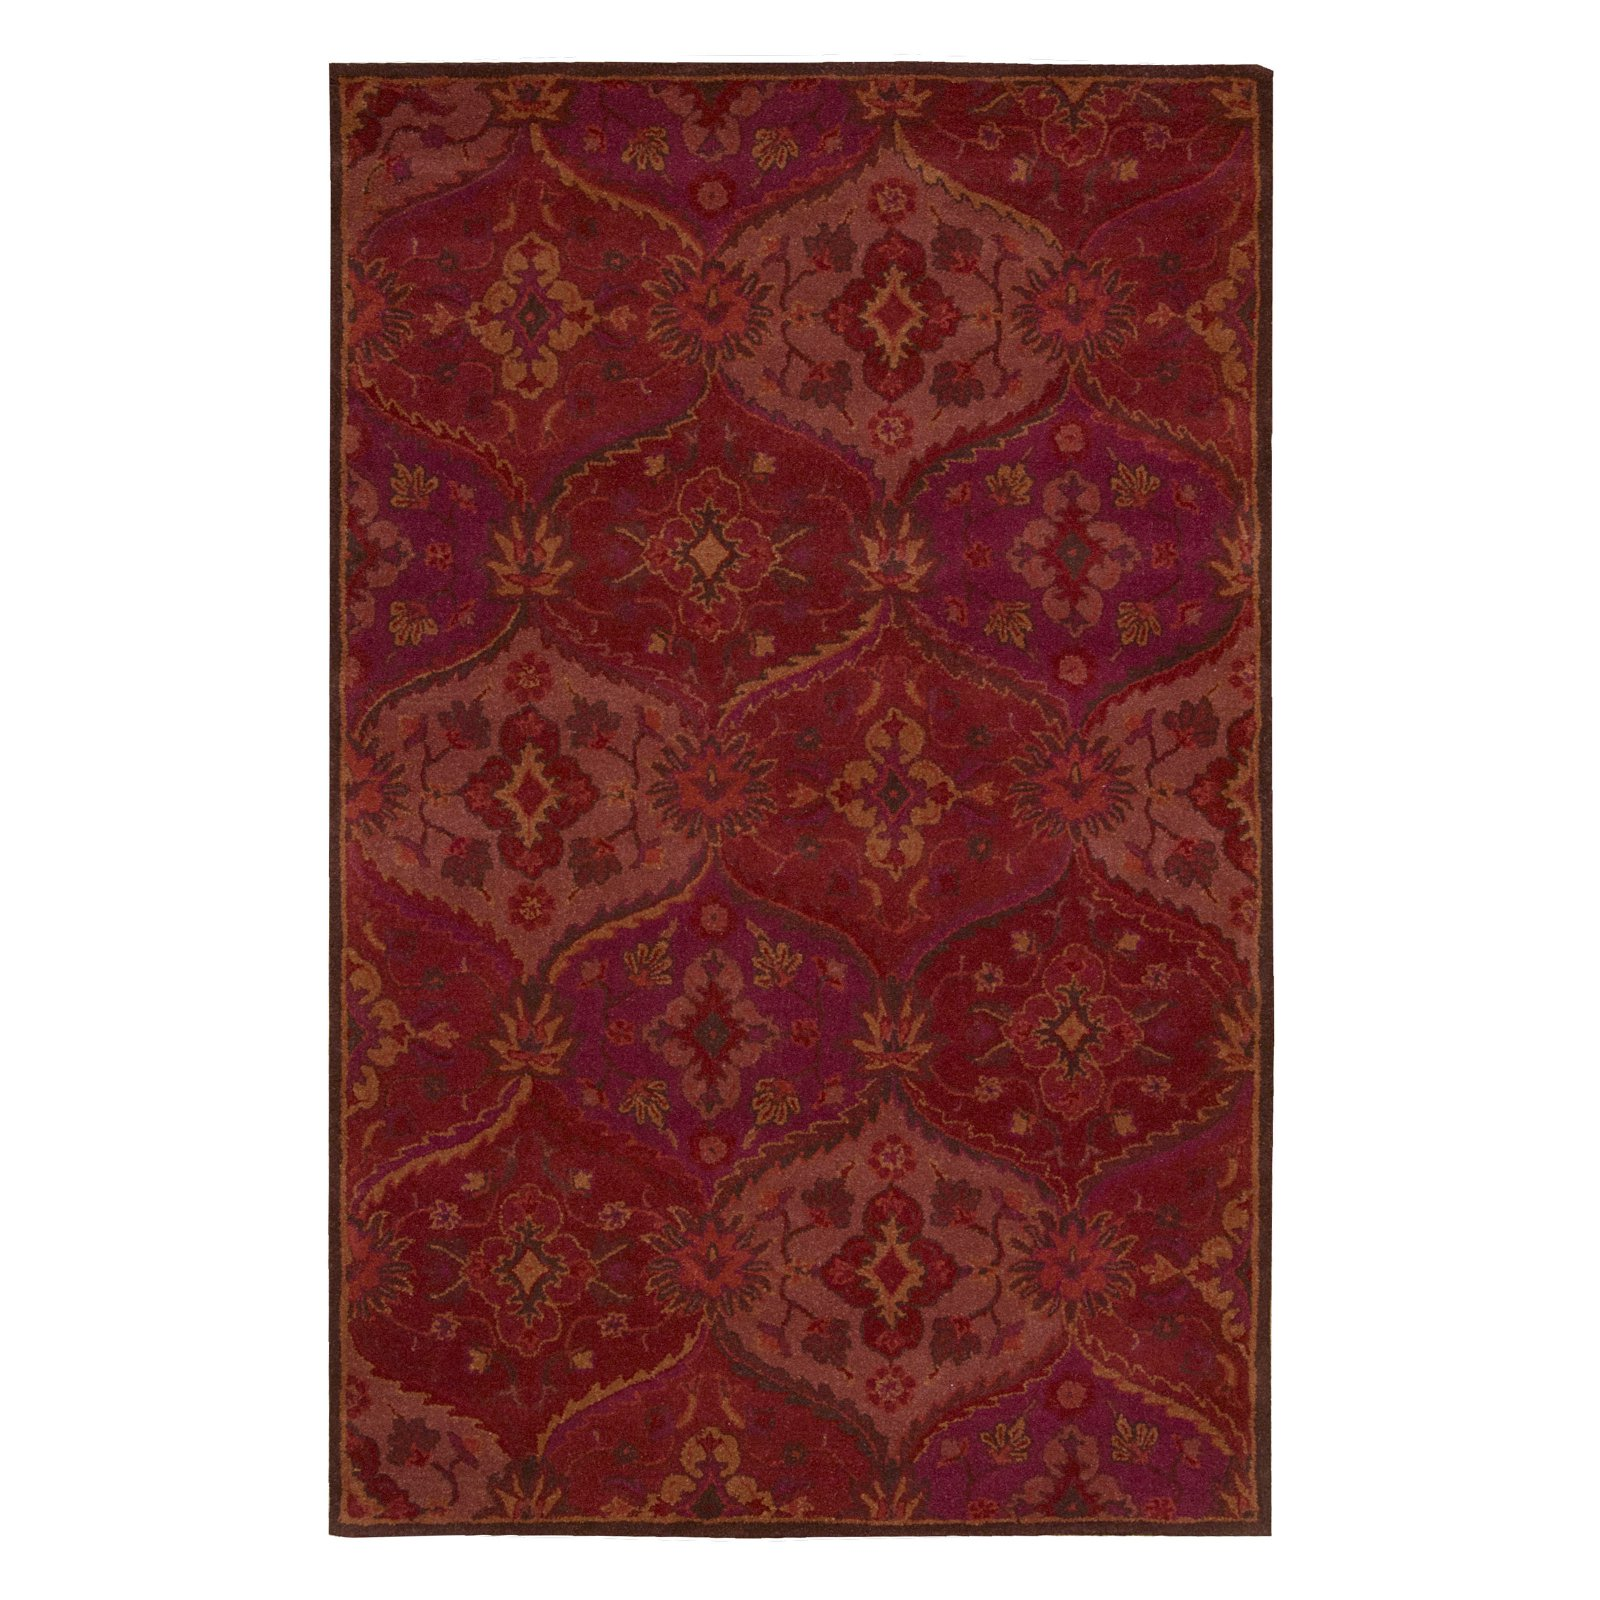 Area Rugs From India: Nourison India House Area Rug